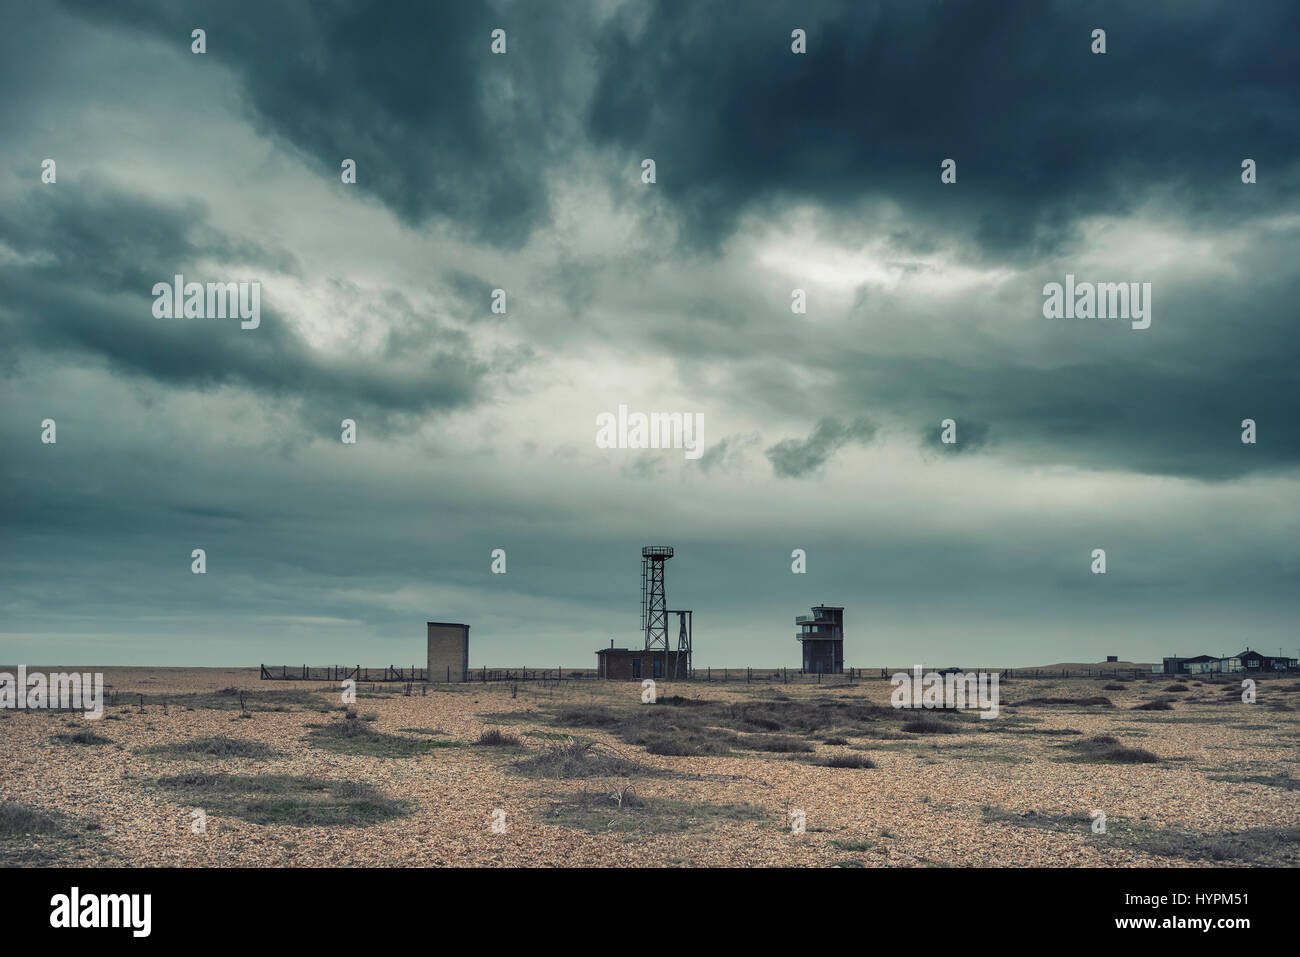 Cross processed conceptual post apocalyptic nuclear landscape with abandoned buildings - Stock Image